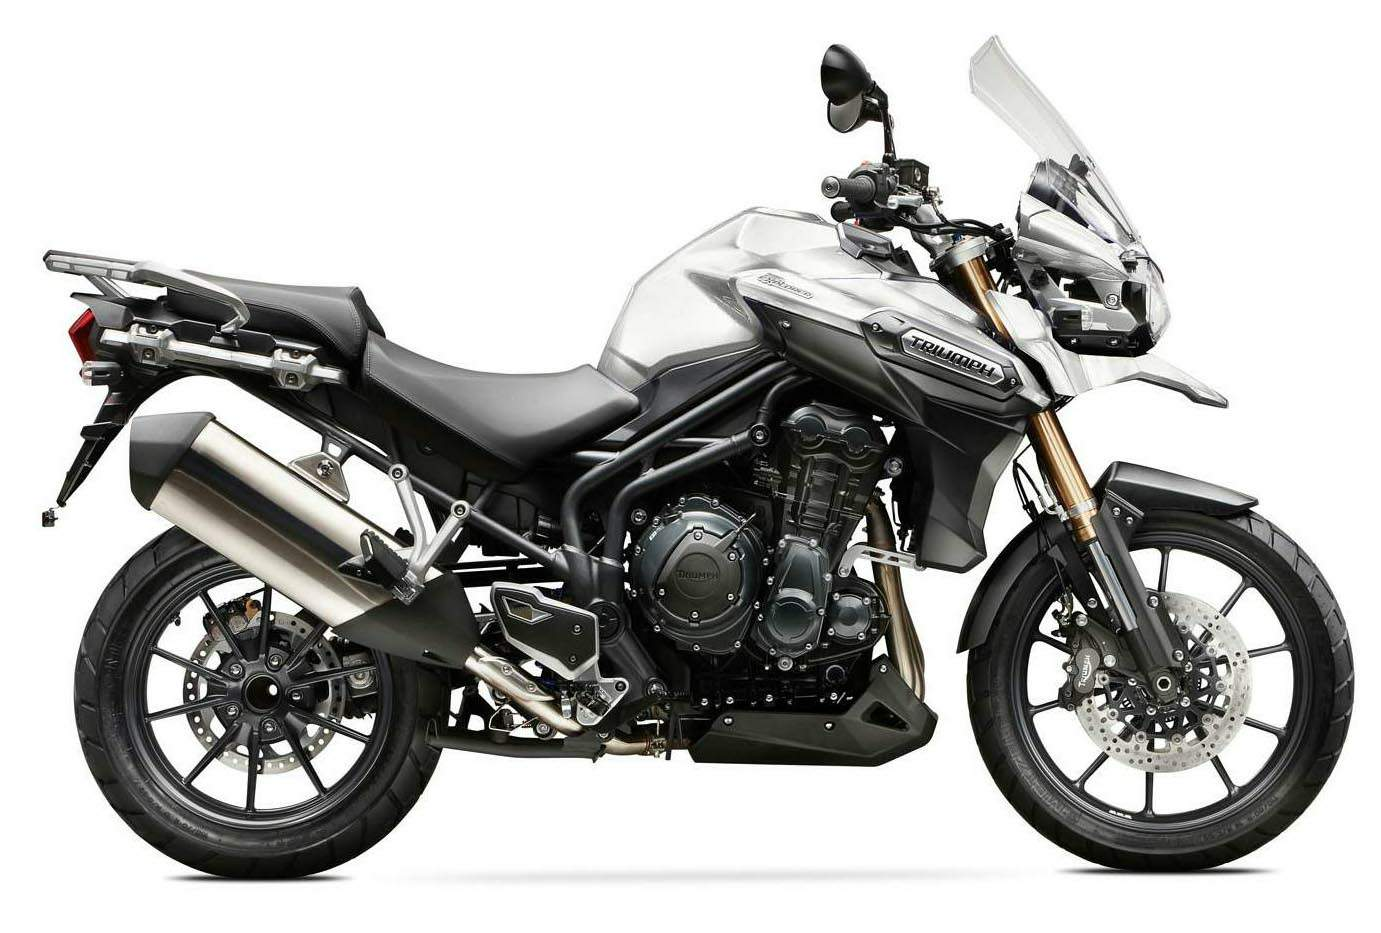 Мотоцикл Triumph Tiger 1200 Explorer 2015